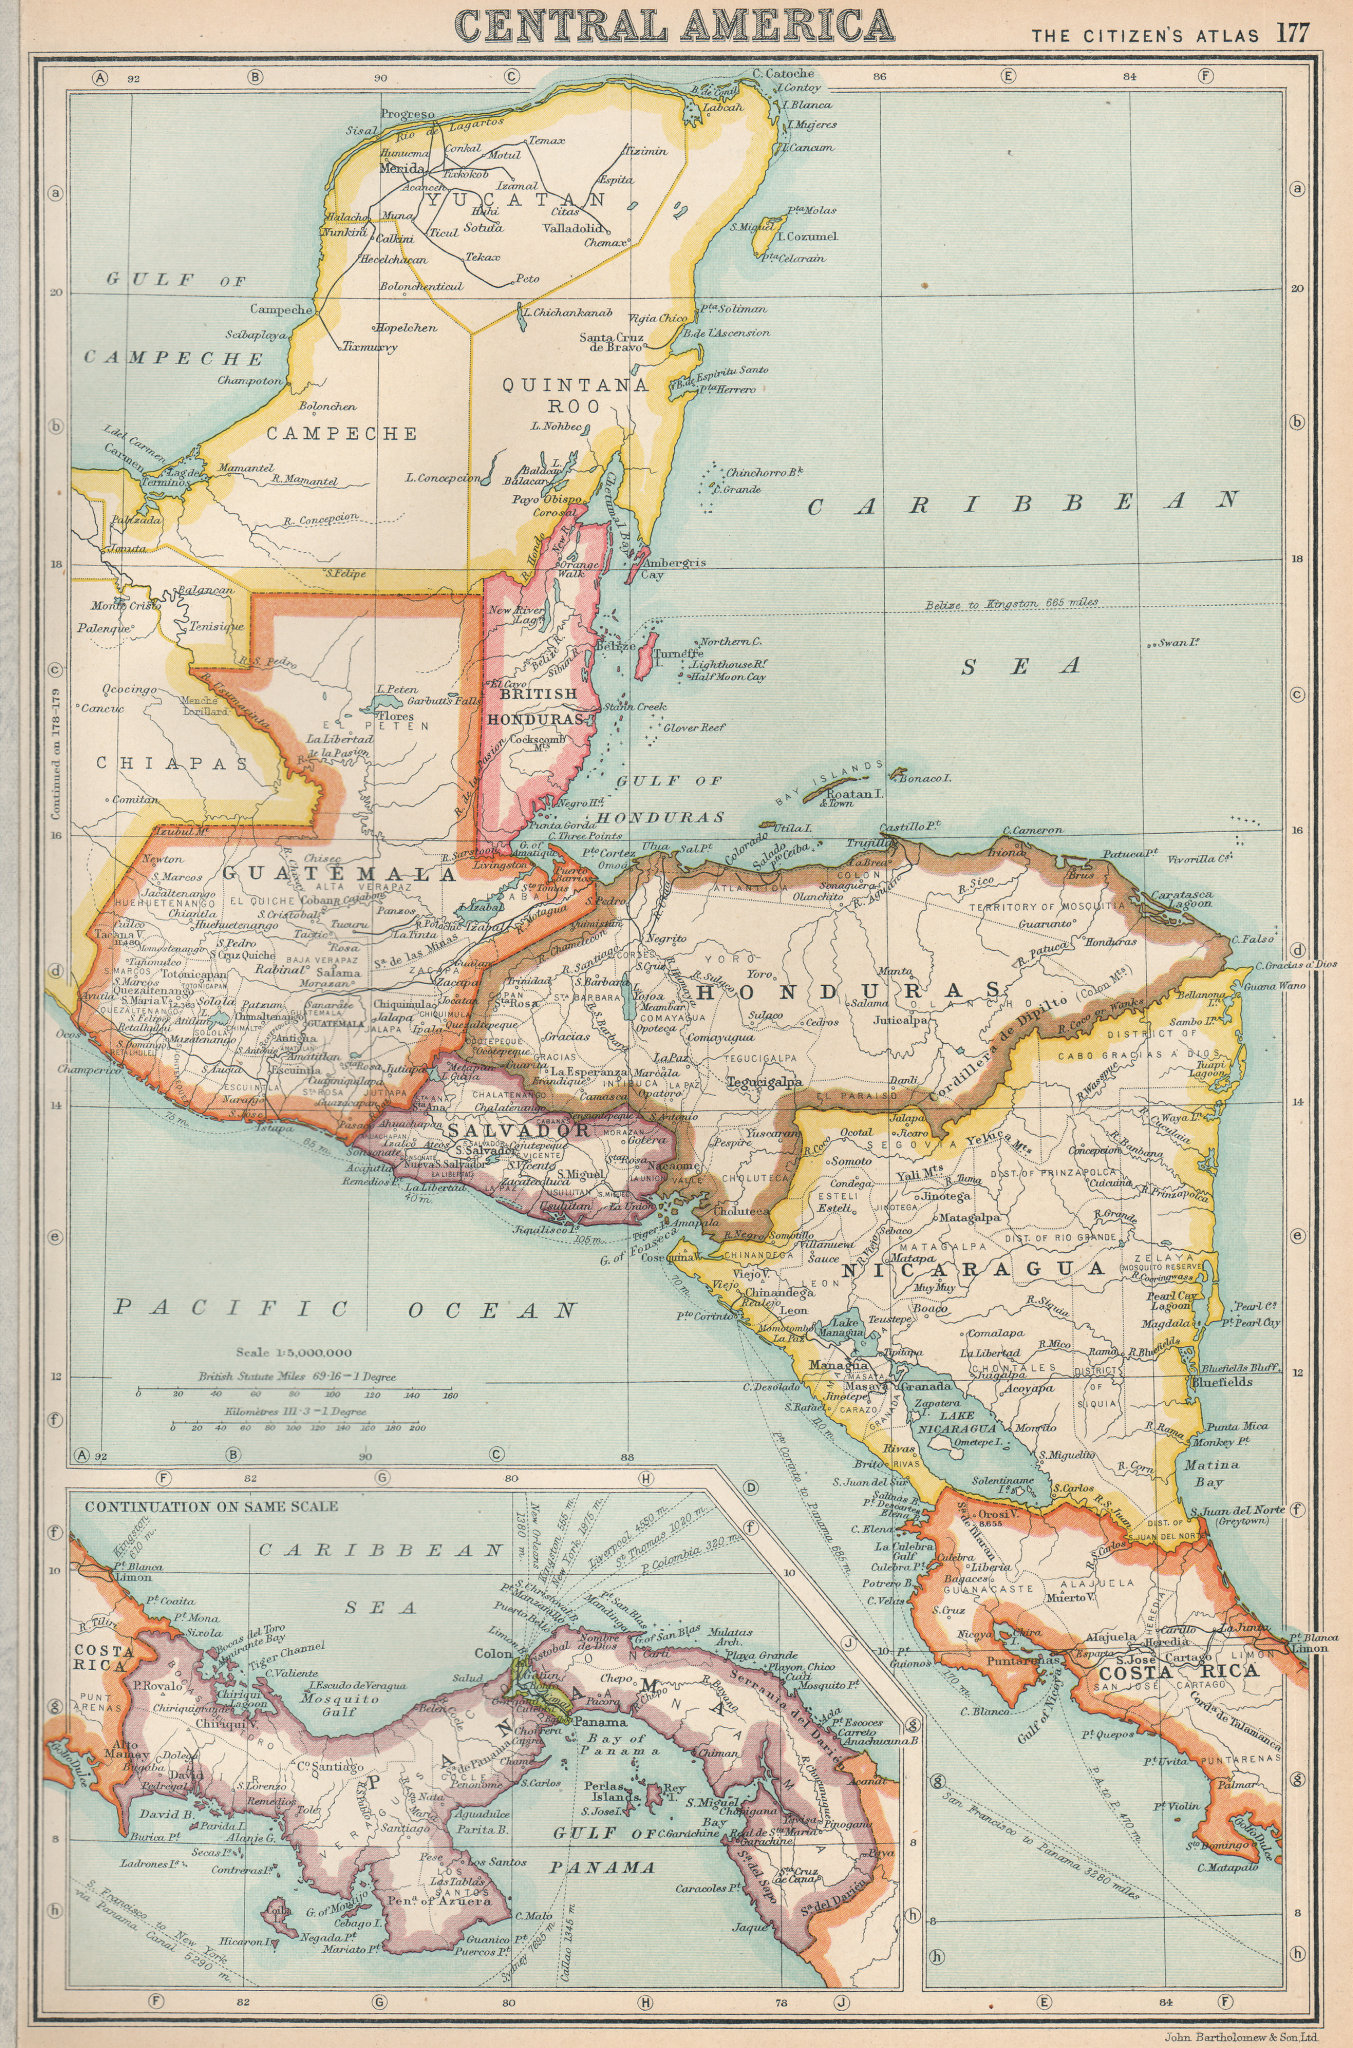 Associate Product CENTRAL AMERICA. US Panama canal zone ownership shown. BARTHOLOMEW 1924 map